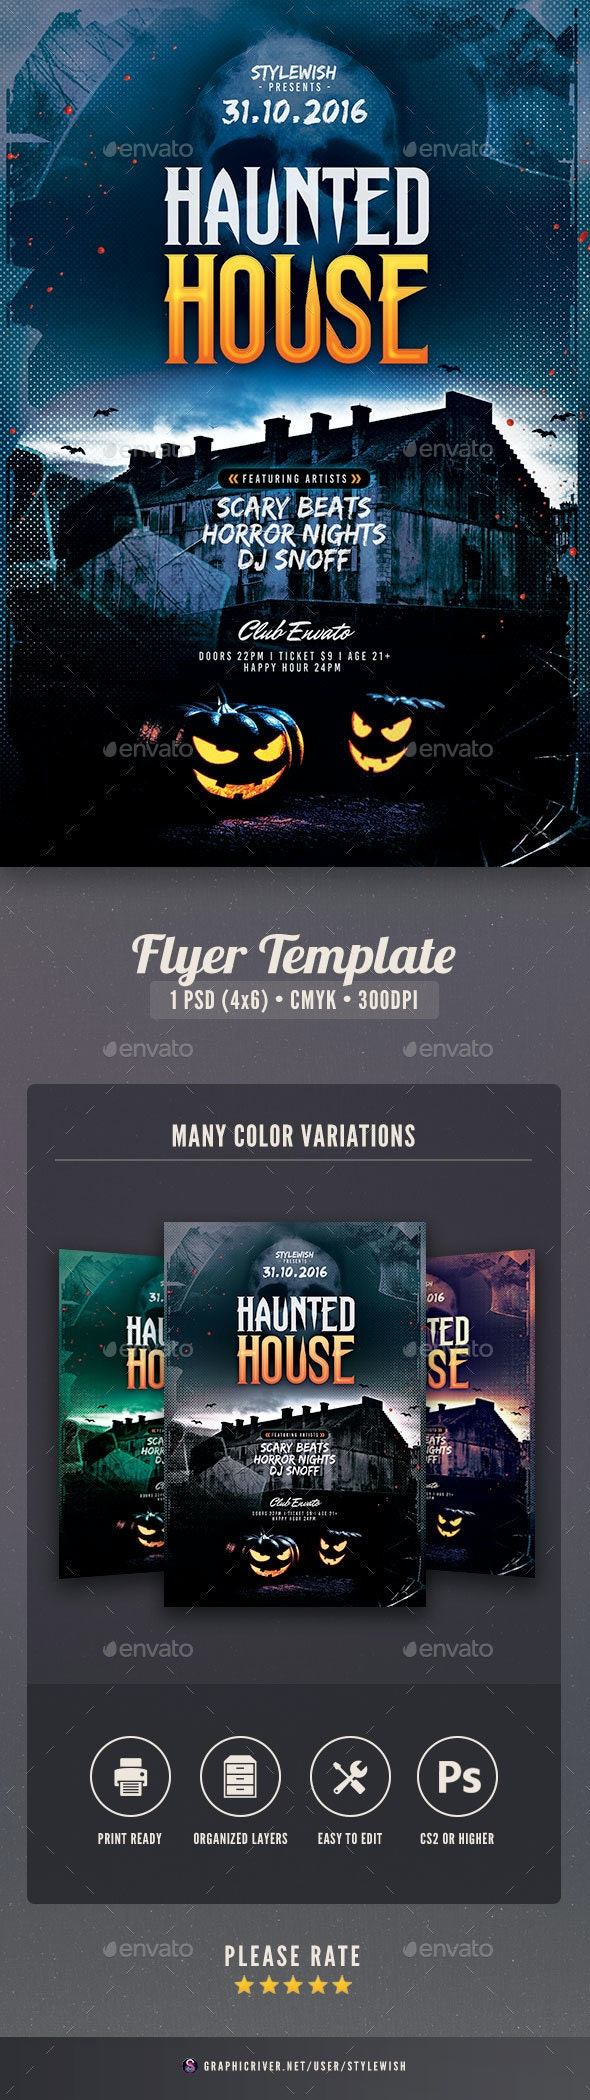 Haunted House Flyer - Clubs & Parties Events